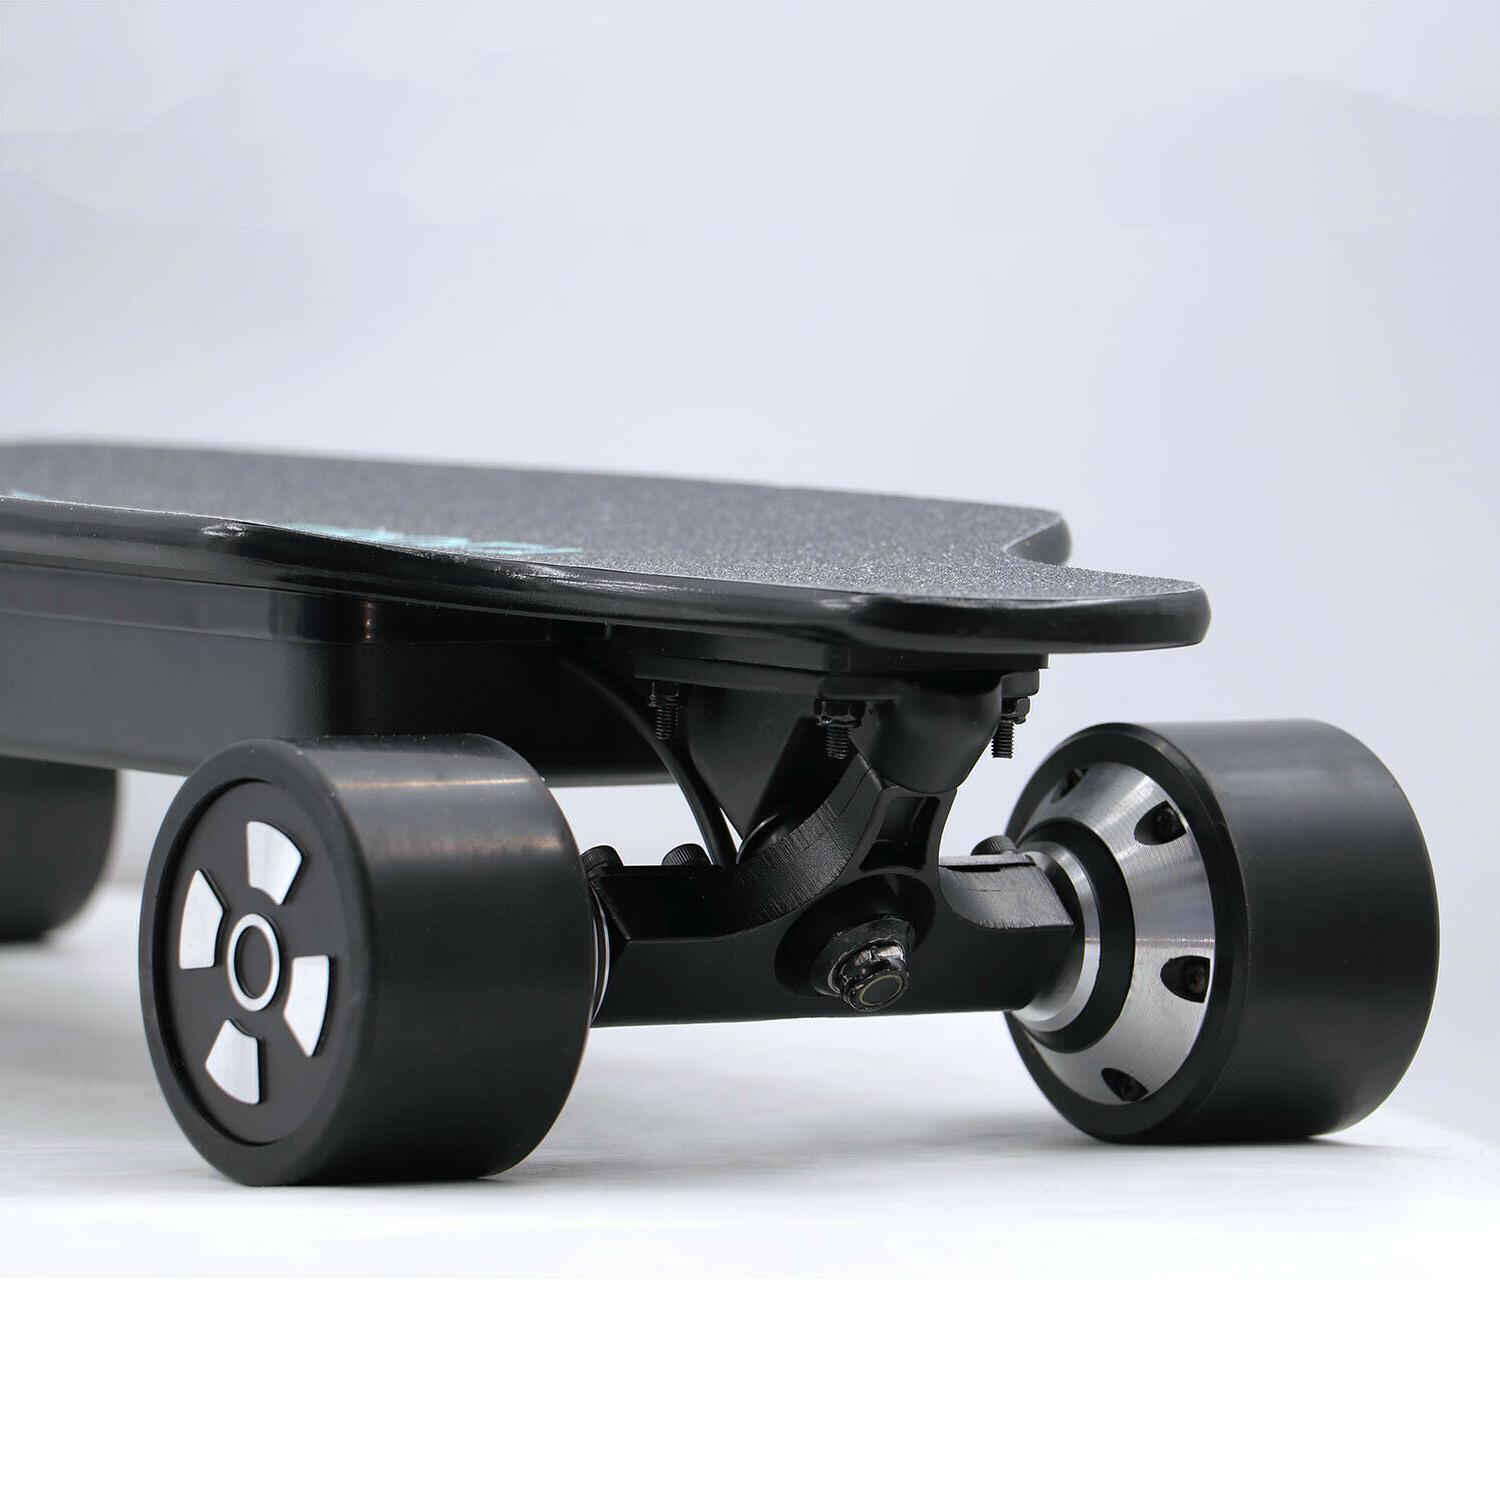 Skatebolt Electric Ah One MPH 14 MILES Remote